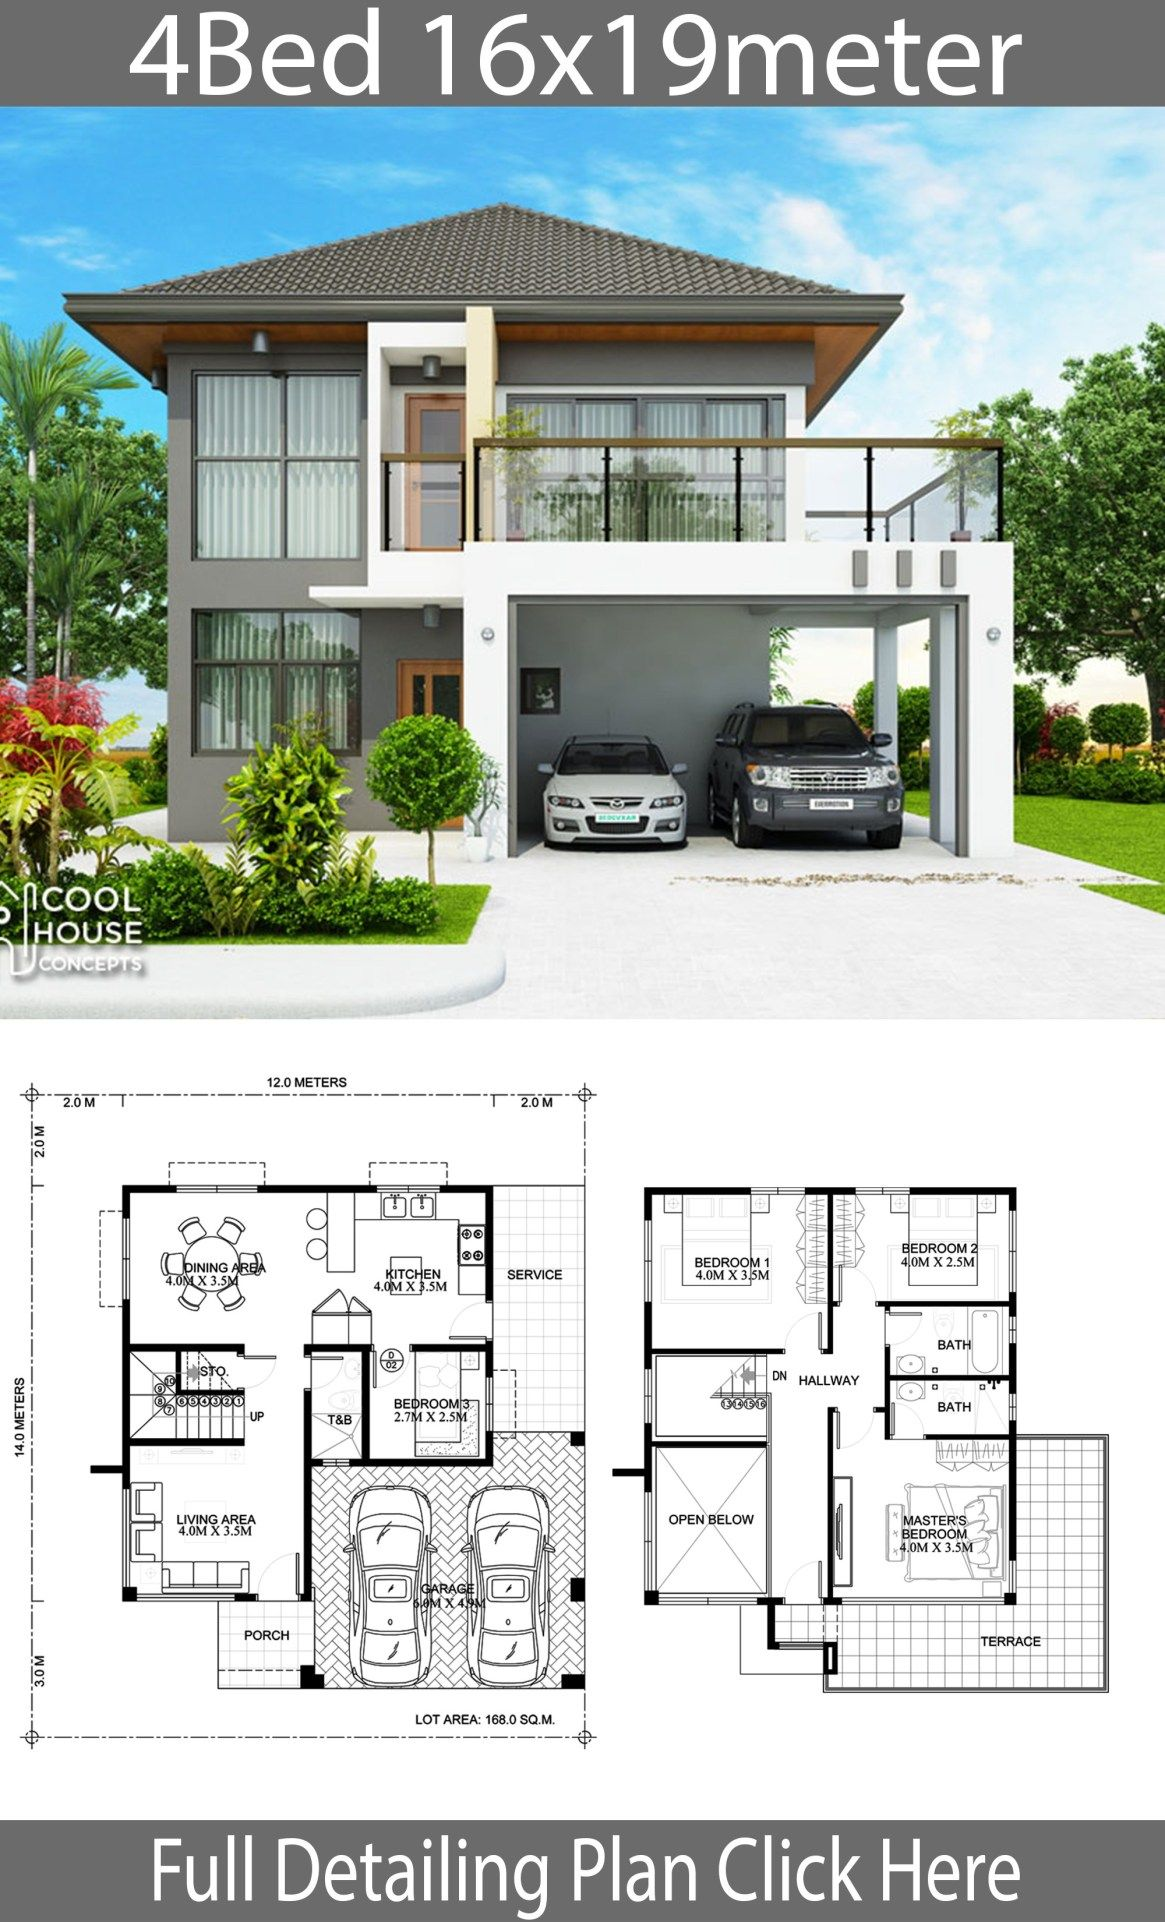 Home Design Plan 16x19m With 4 Bedrooms Home Design With Plansearch Philippines House Design 2 Storey House Design Modern House Plans